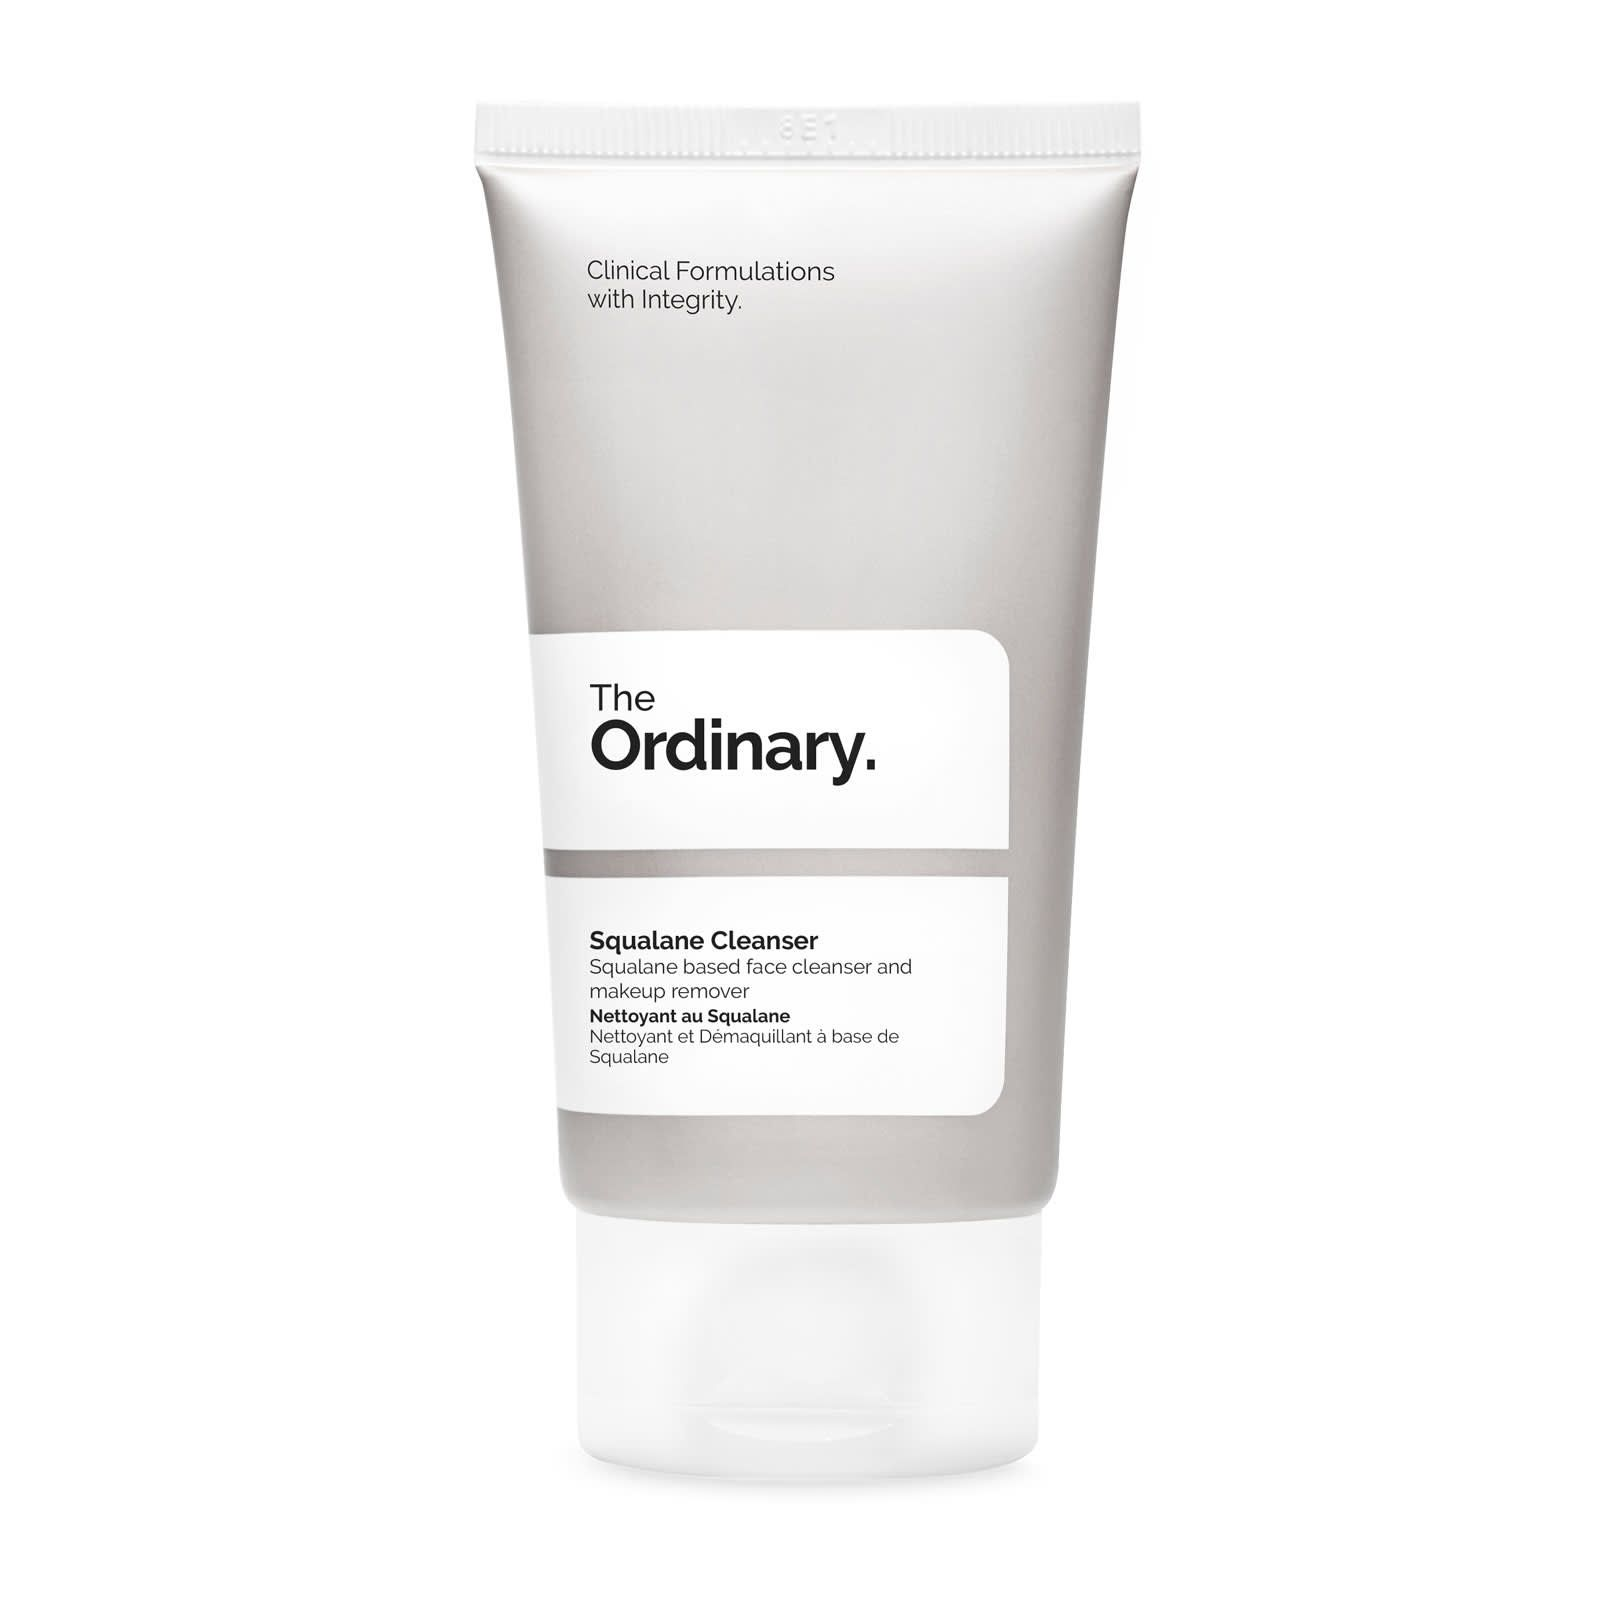 The Ordinary Are Launching In Boots